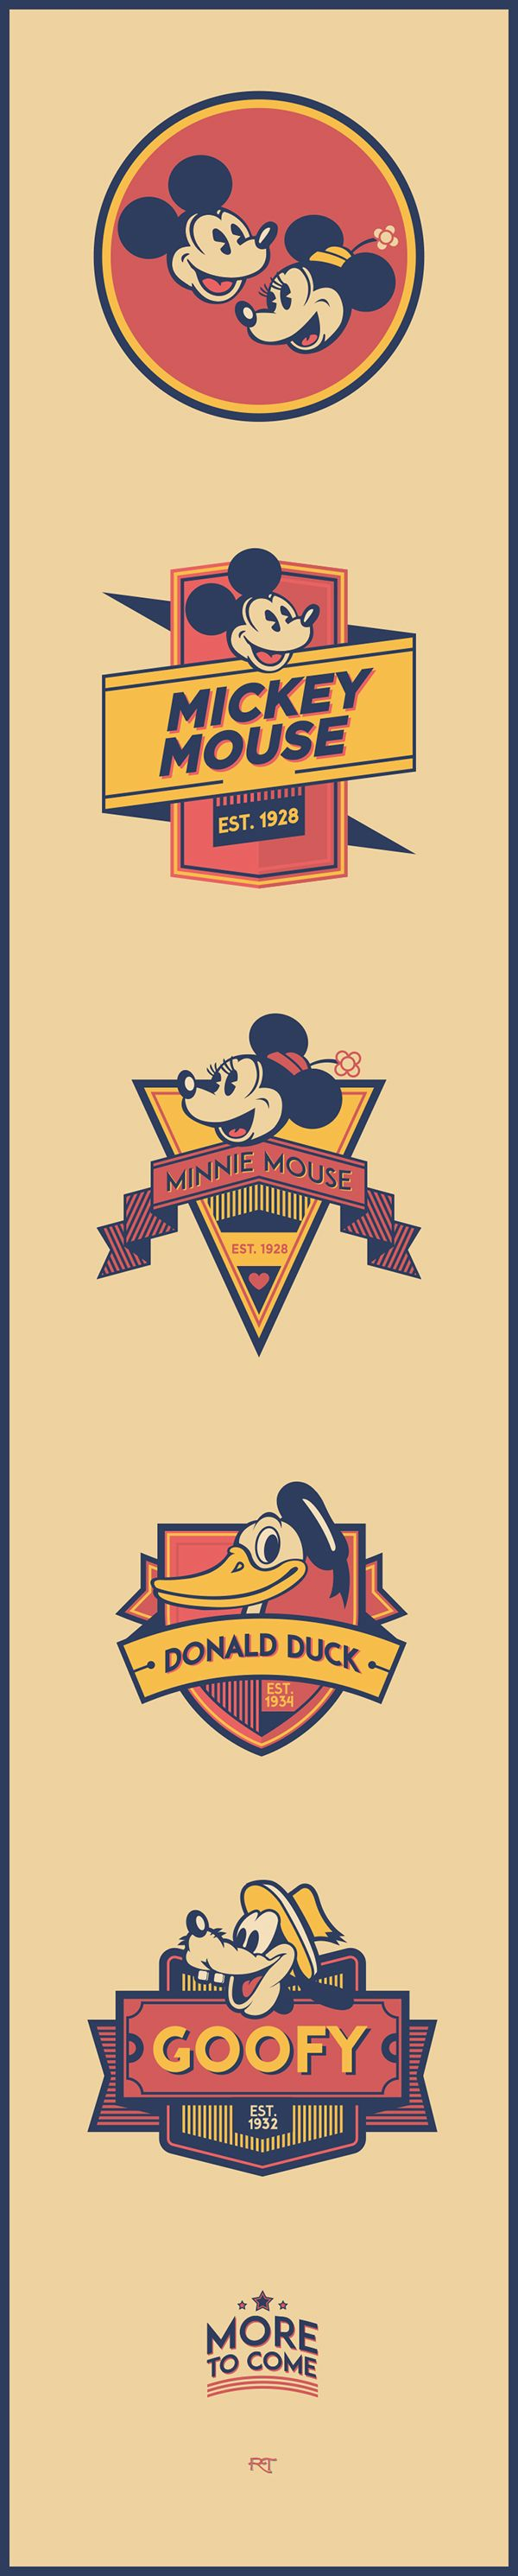 Personal Project Branding Disney Characters With Their Own Vintage Style Logo Enjoy And Share